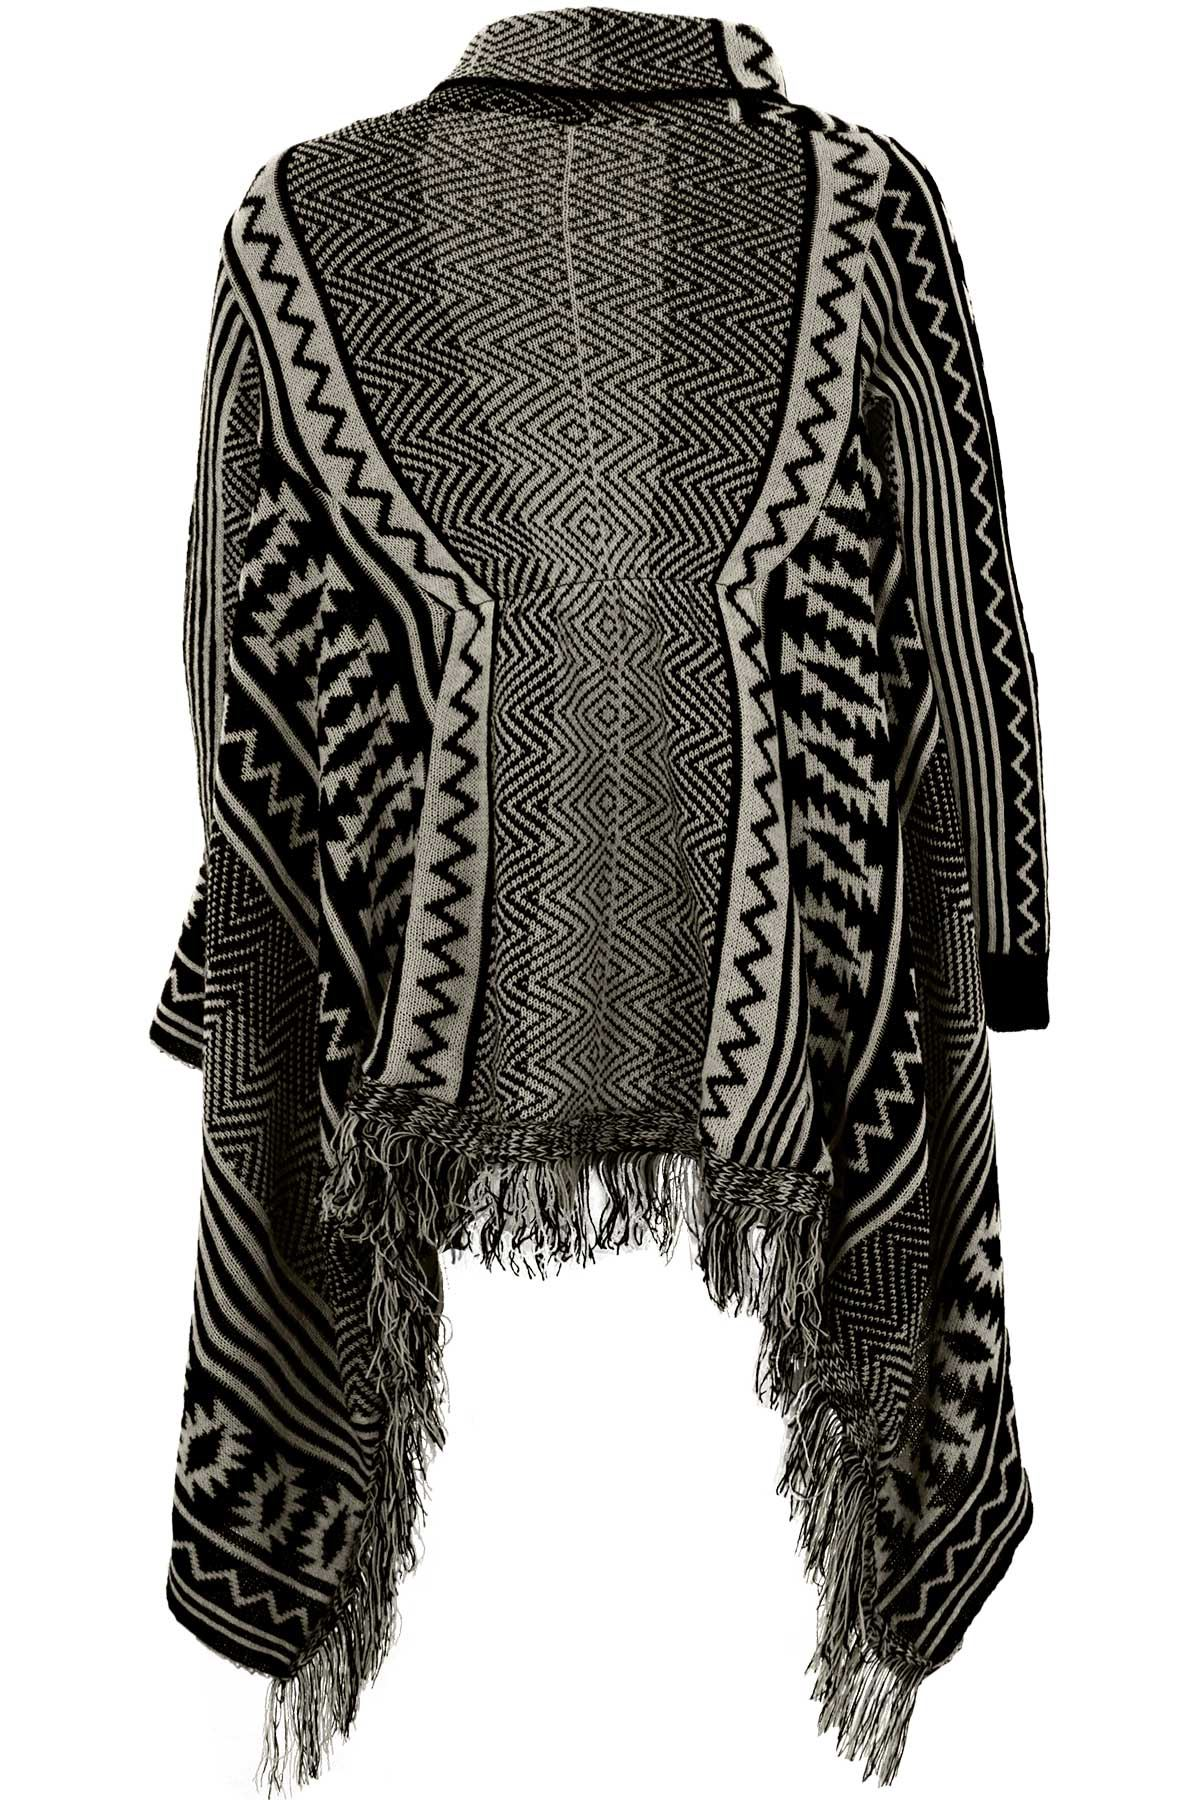 Ladies Aztec Tassel Waterfall Cardigan Women's Knitted Shawl ...